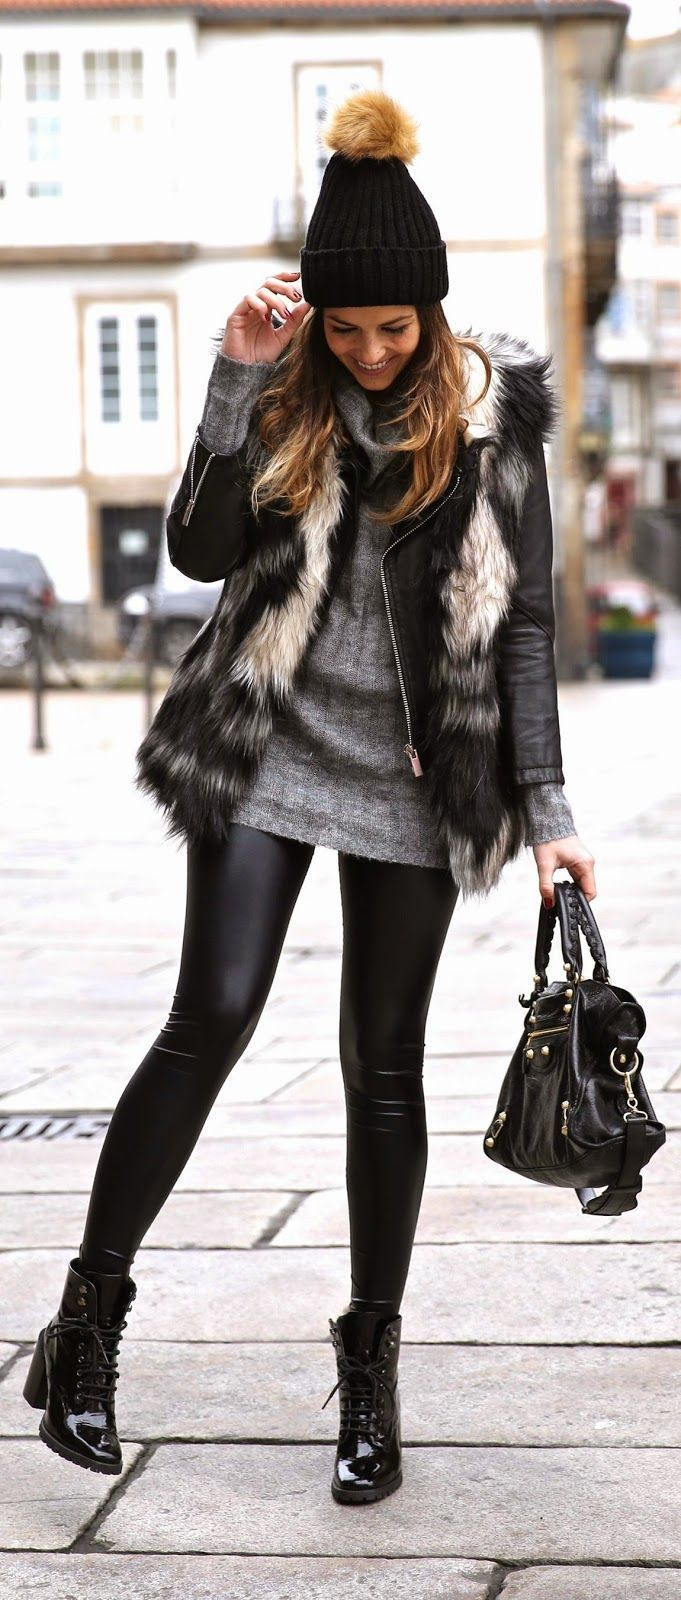 Ad. Black pom pom beanie  Great winter outfit!  leather leggings. Fur vest.